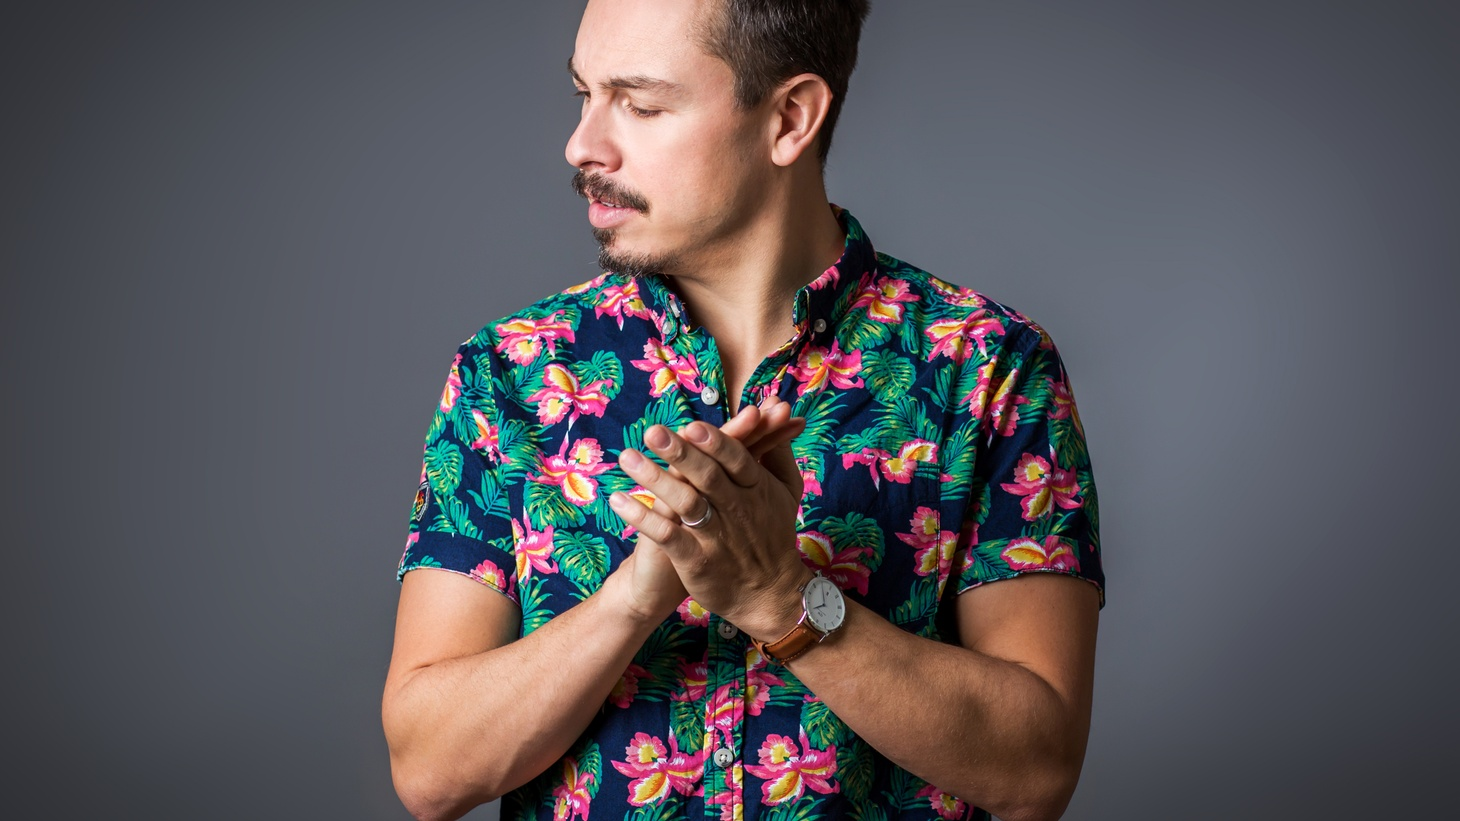 International German producer and DJ Tino Piontek AKA Purple Disco Machine, is known for producing funky disco and house masterpieces since the conception of his highly successful disco-house project in 2009.